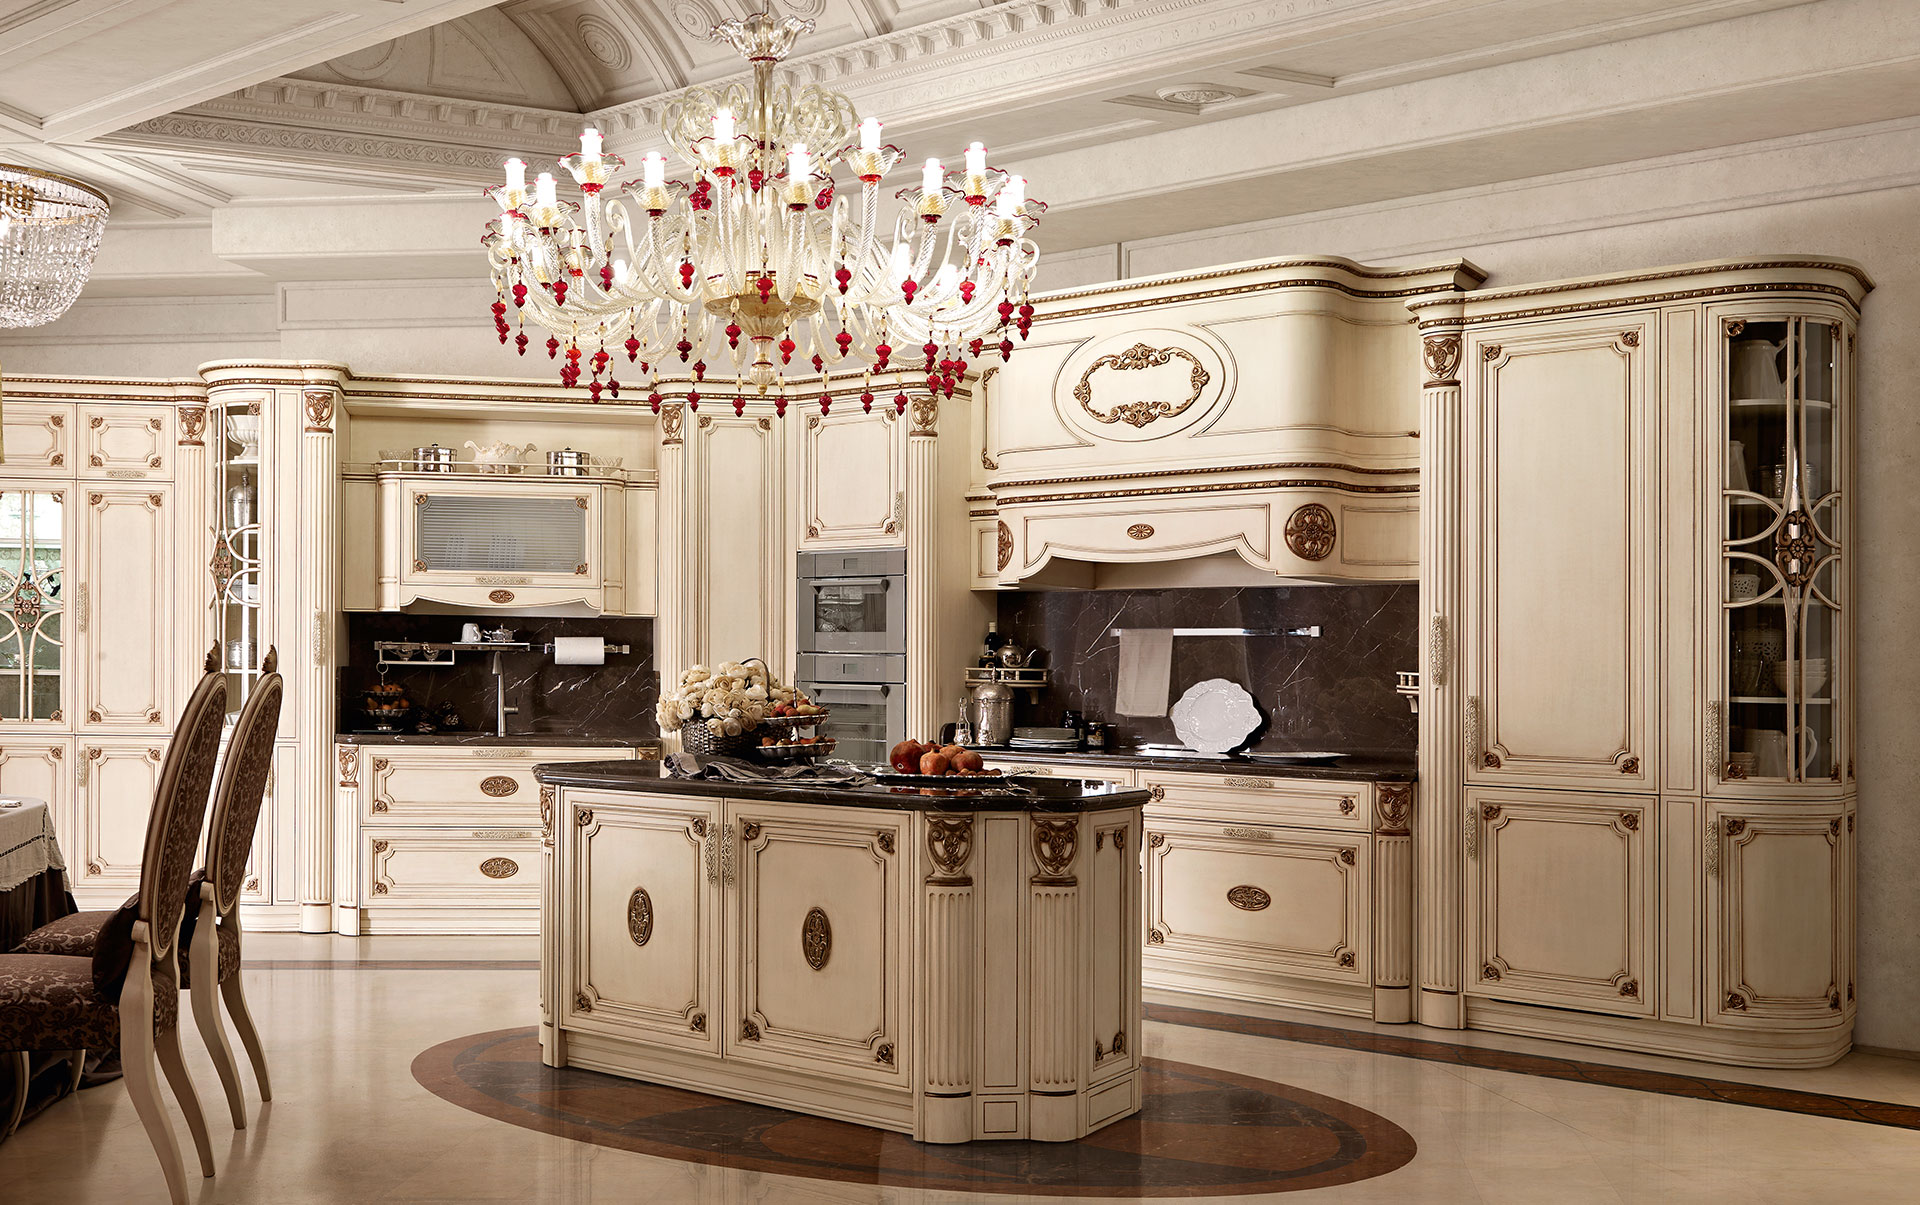 Classic Luxury Kitchen Luxury Italian Custom Made Solid Wood Kitchen Cabinets  Exclusive